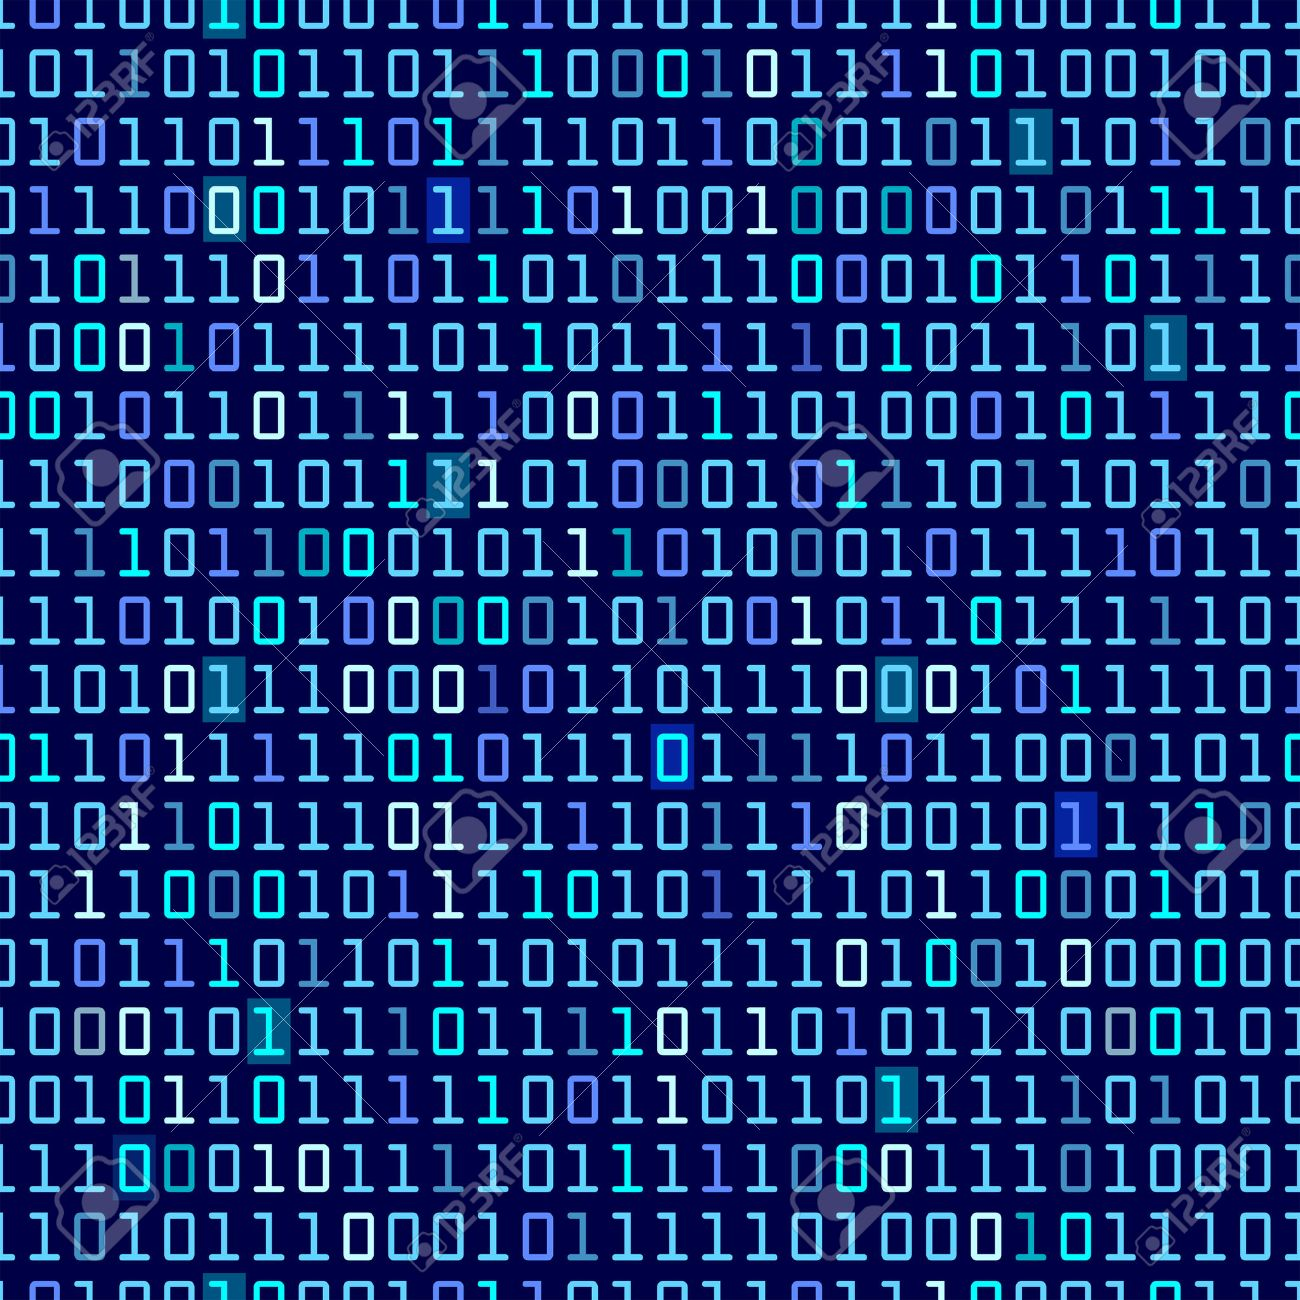 Blue binary computer code repeating vector background illustration - 23190573